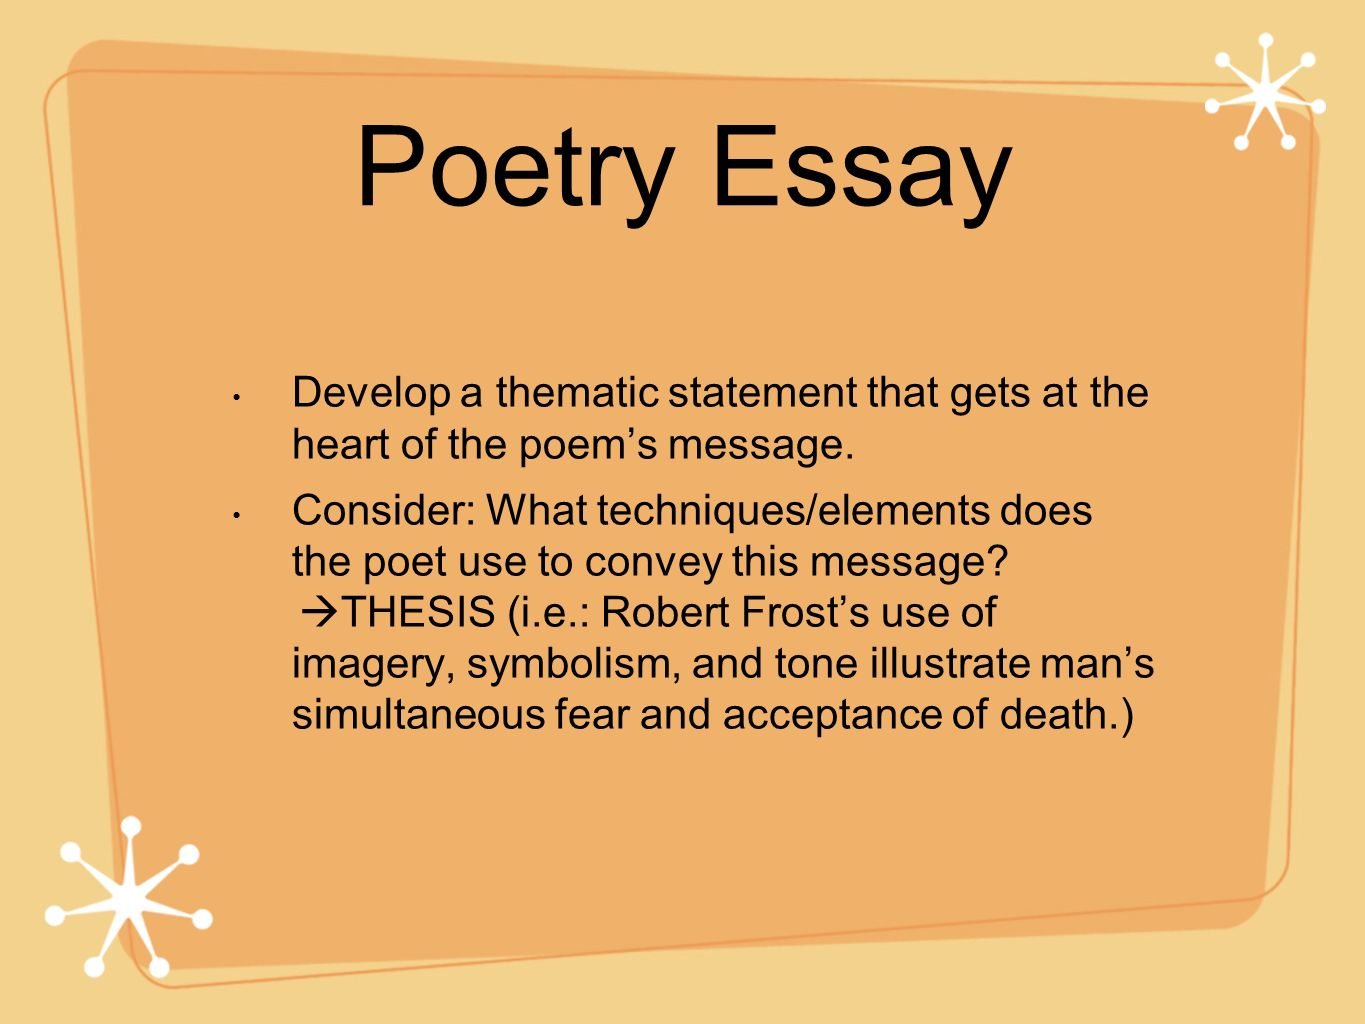 Poetry Essay Develop a thematic statement that gets at the heart of the poem's message.